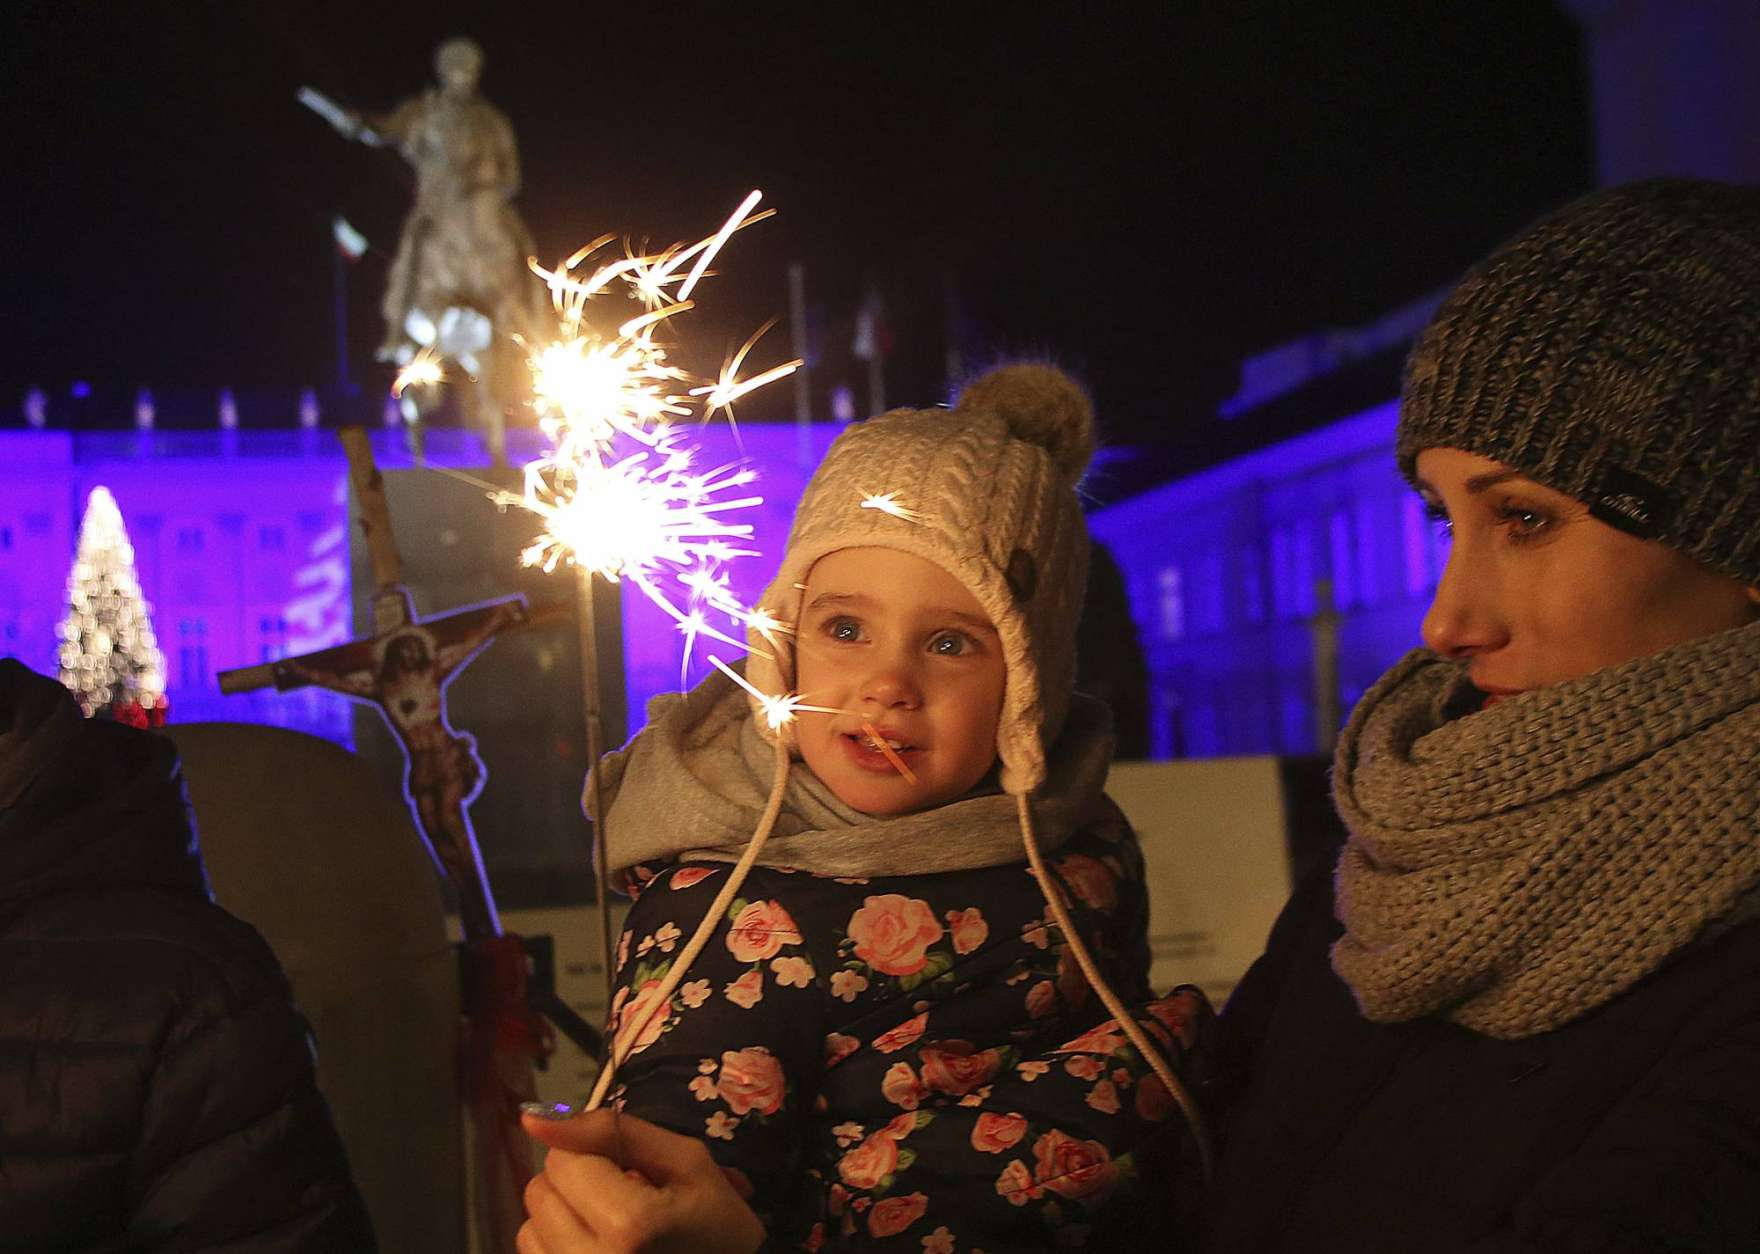 Spectators celebrate the New Year in front of the Presidential Palace in Warsaw, Poland, Sunday, Jan. 1, 2017. Thousands of Warsaw residents took to the streets in the capital to usher in the New Year.(AP Photo/Czarek Sokolowski)